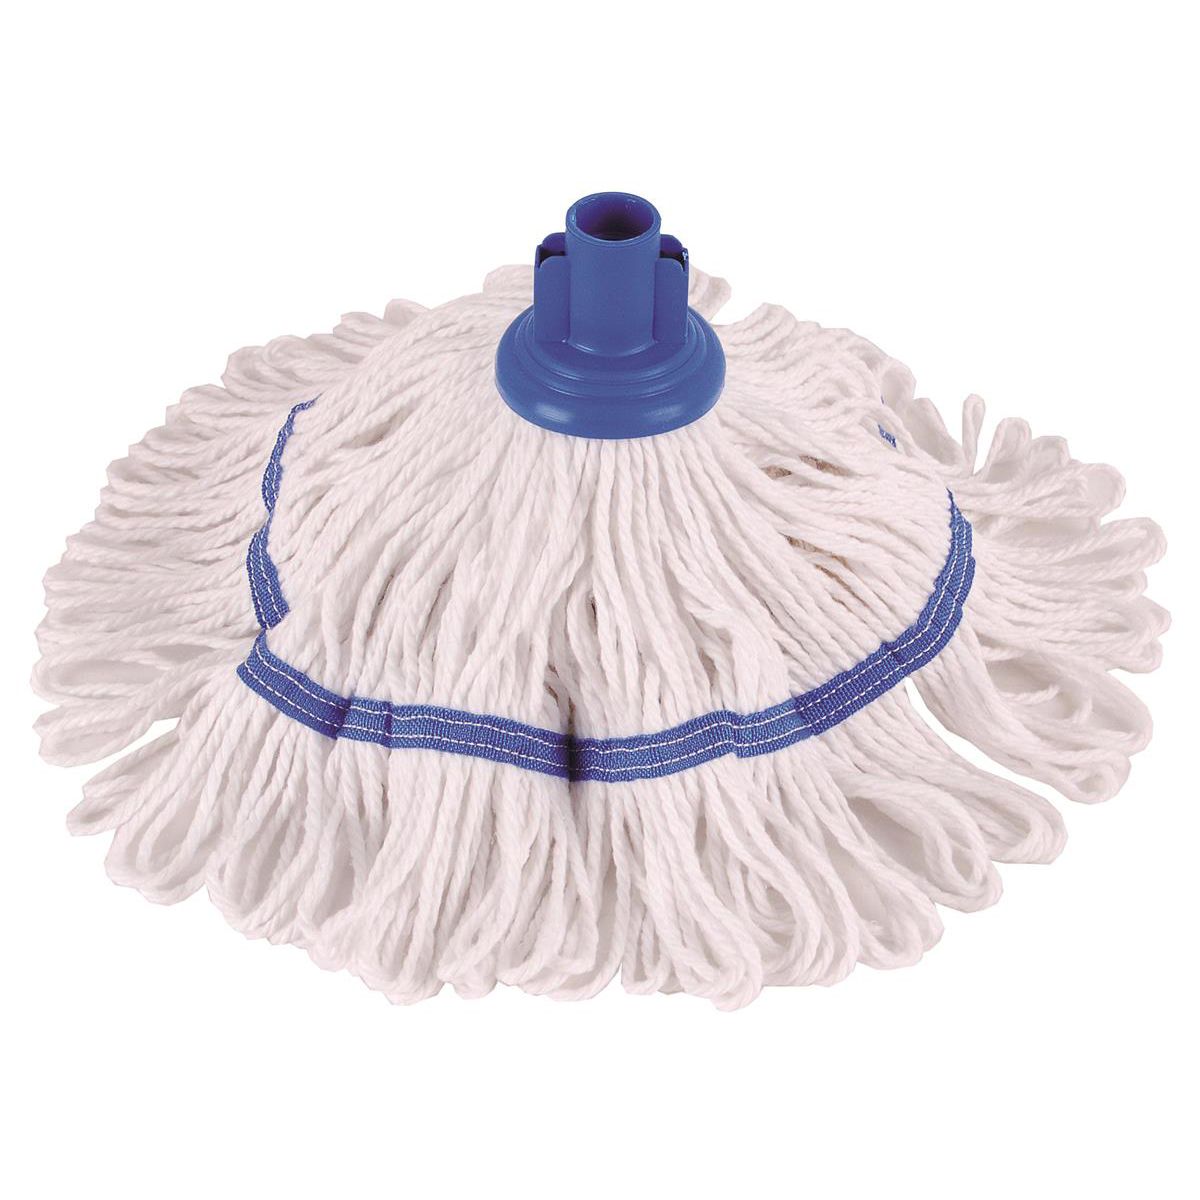 Robert Scott & Sons Hygiemix T1 Socket Cotton & Synthetic Colour-coded Mop 200g Blue Ref MHH200B